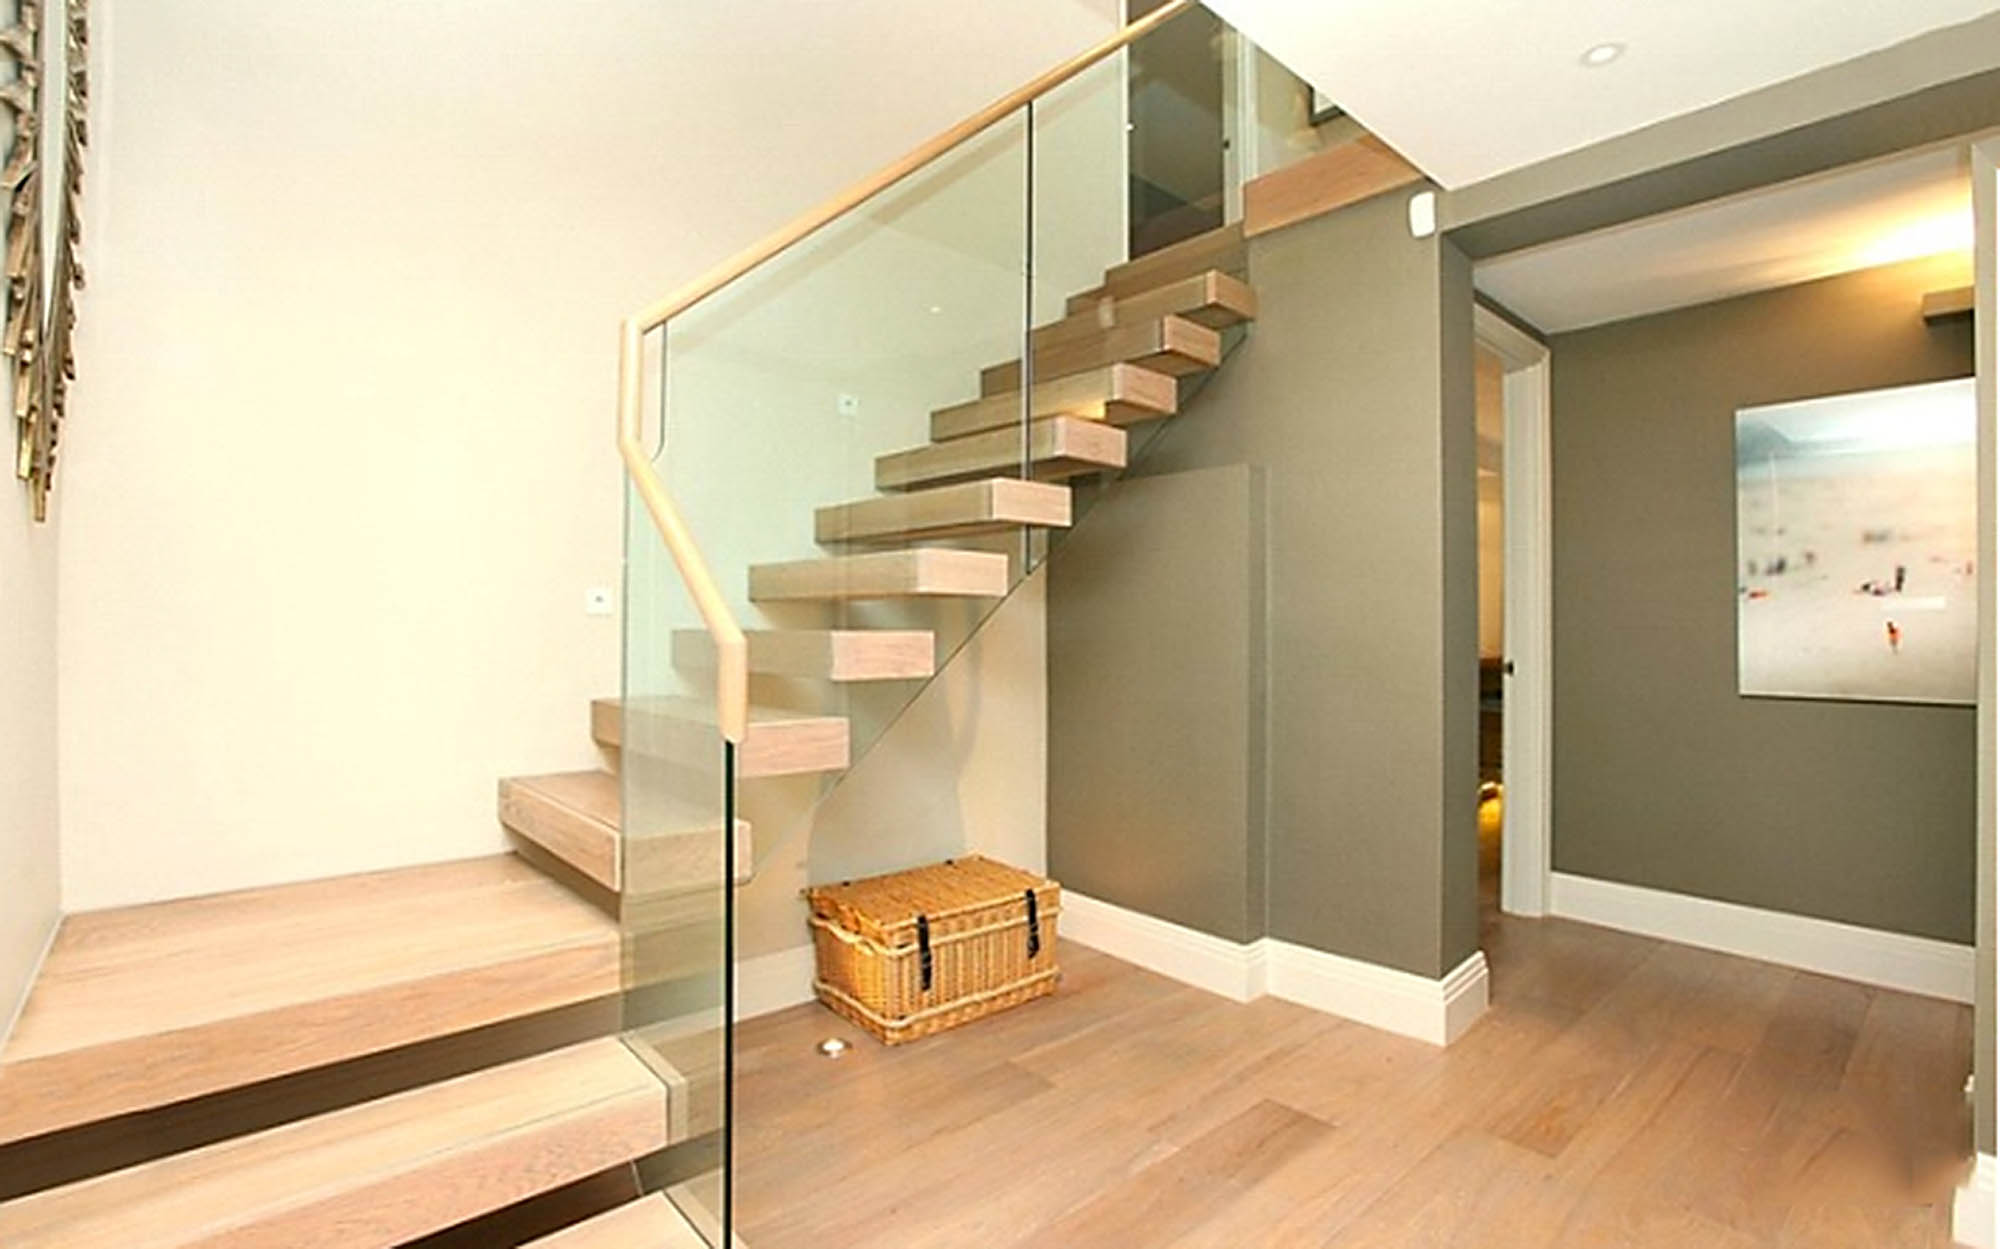 Feature cantilever staircase with glass balustrade for Putney house renovation project